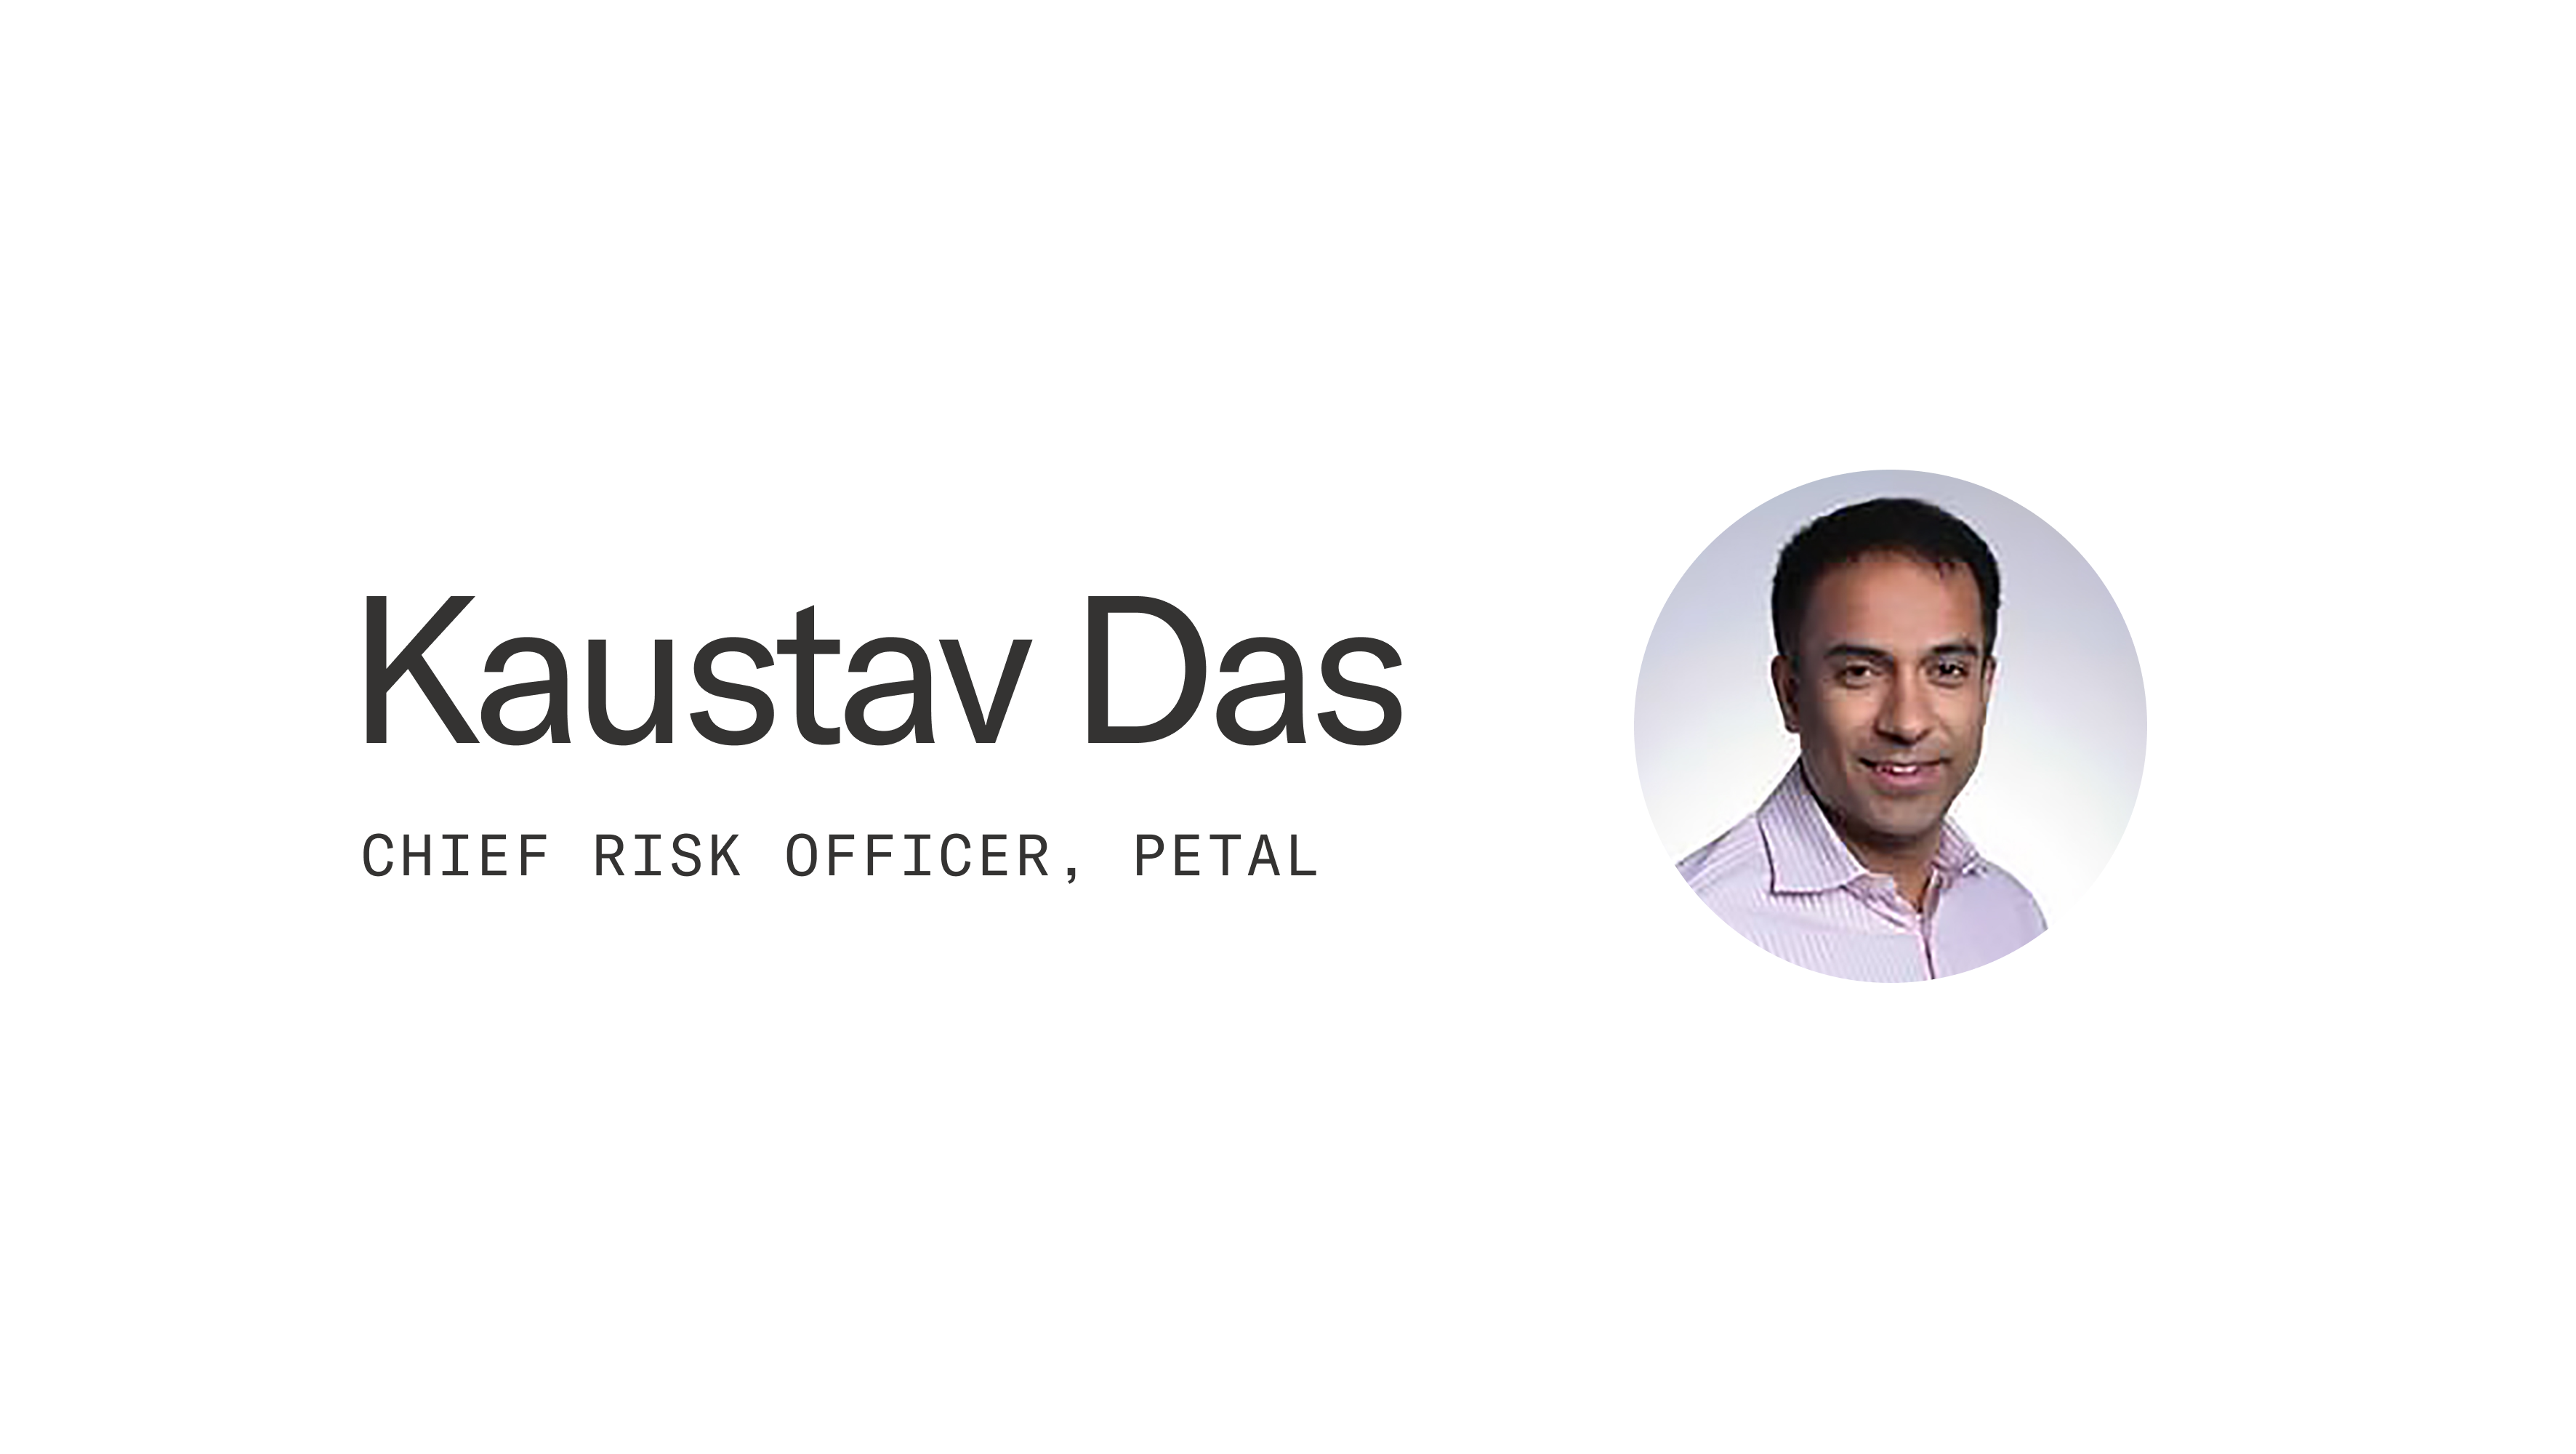 Hero image of Kaustav Das, Chief Risk Officer of Petal